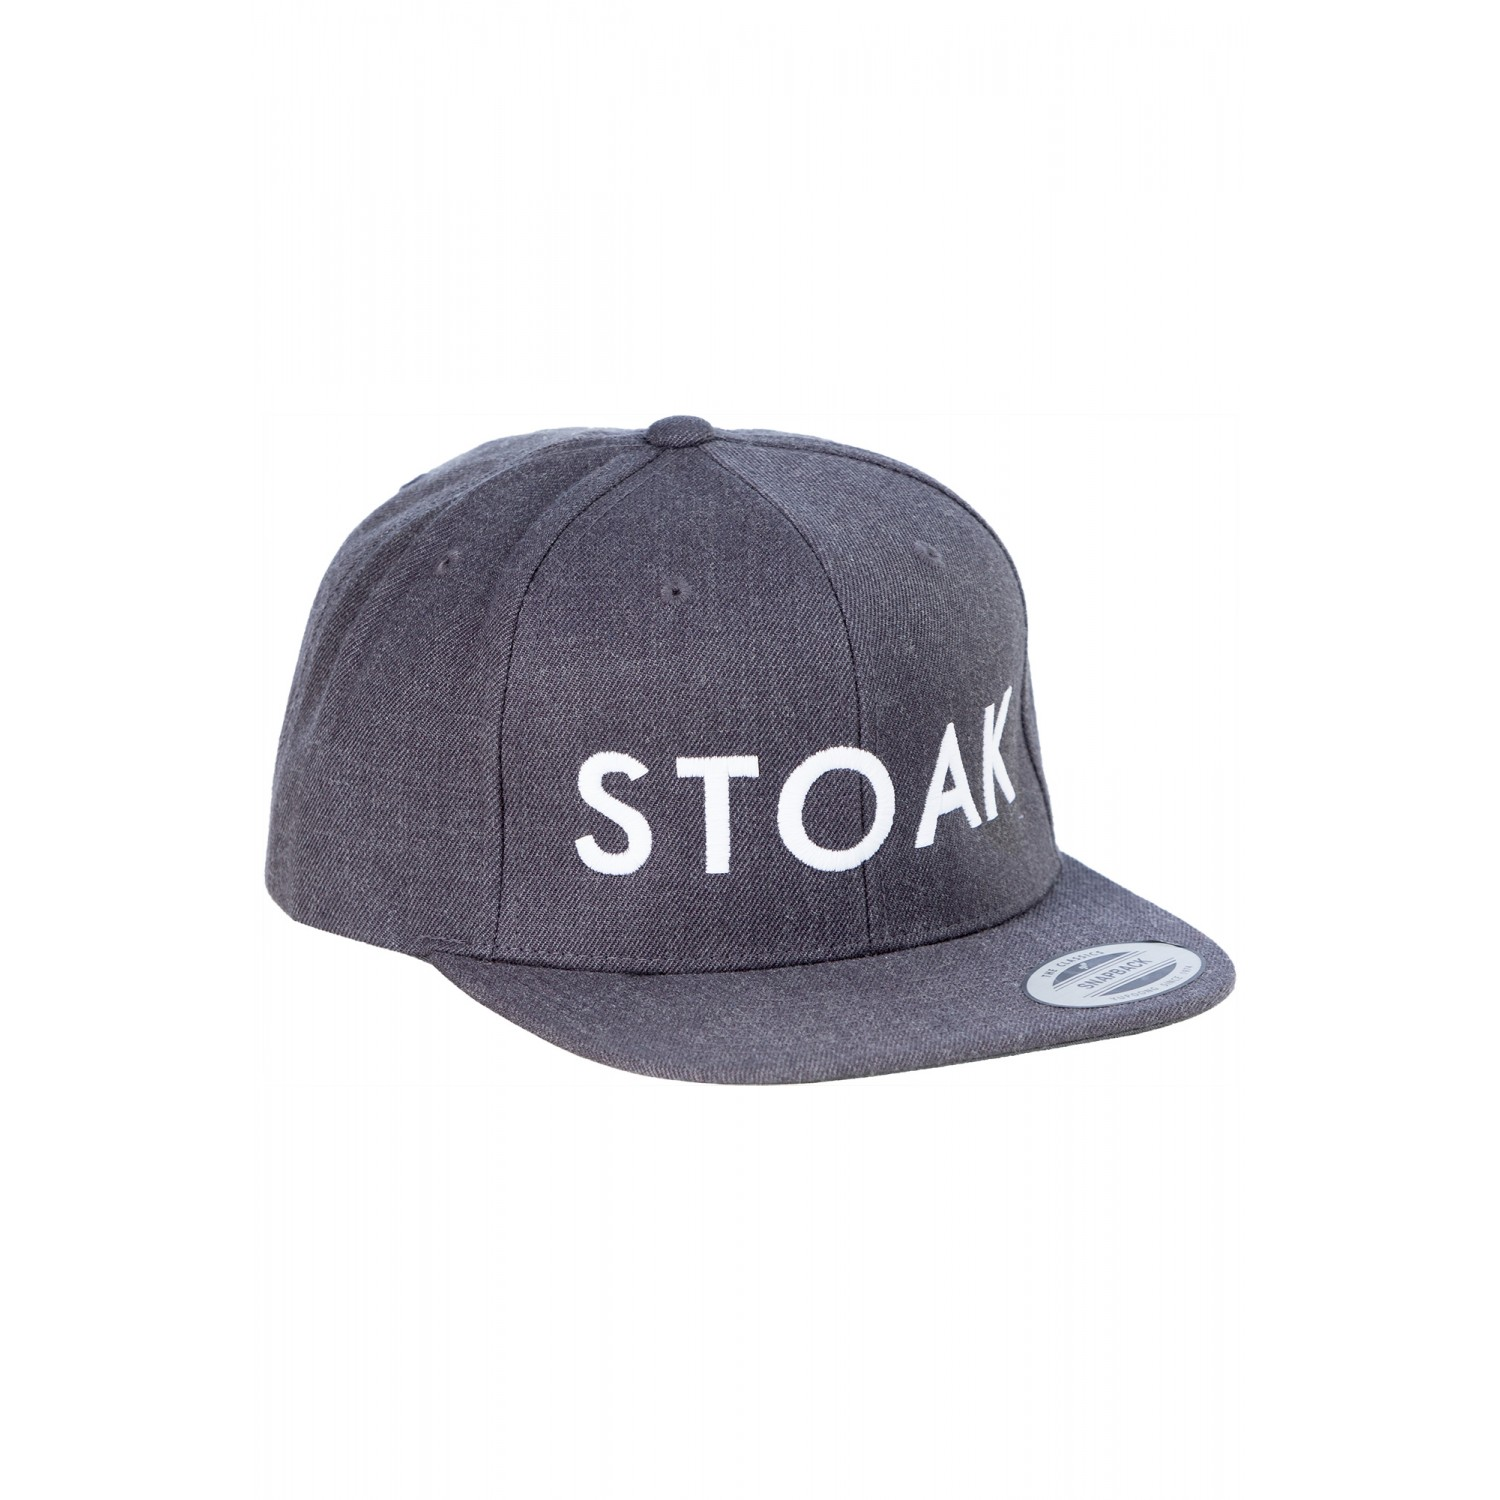 STOAK STONE Cap